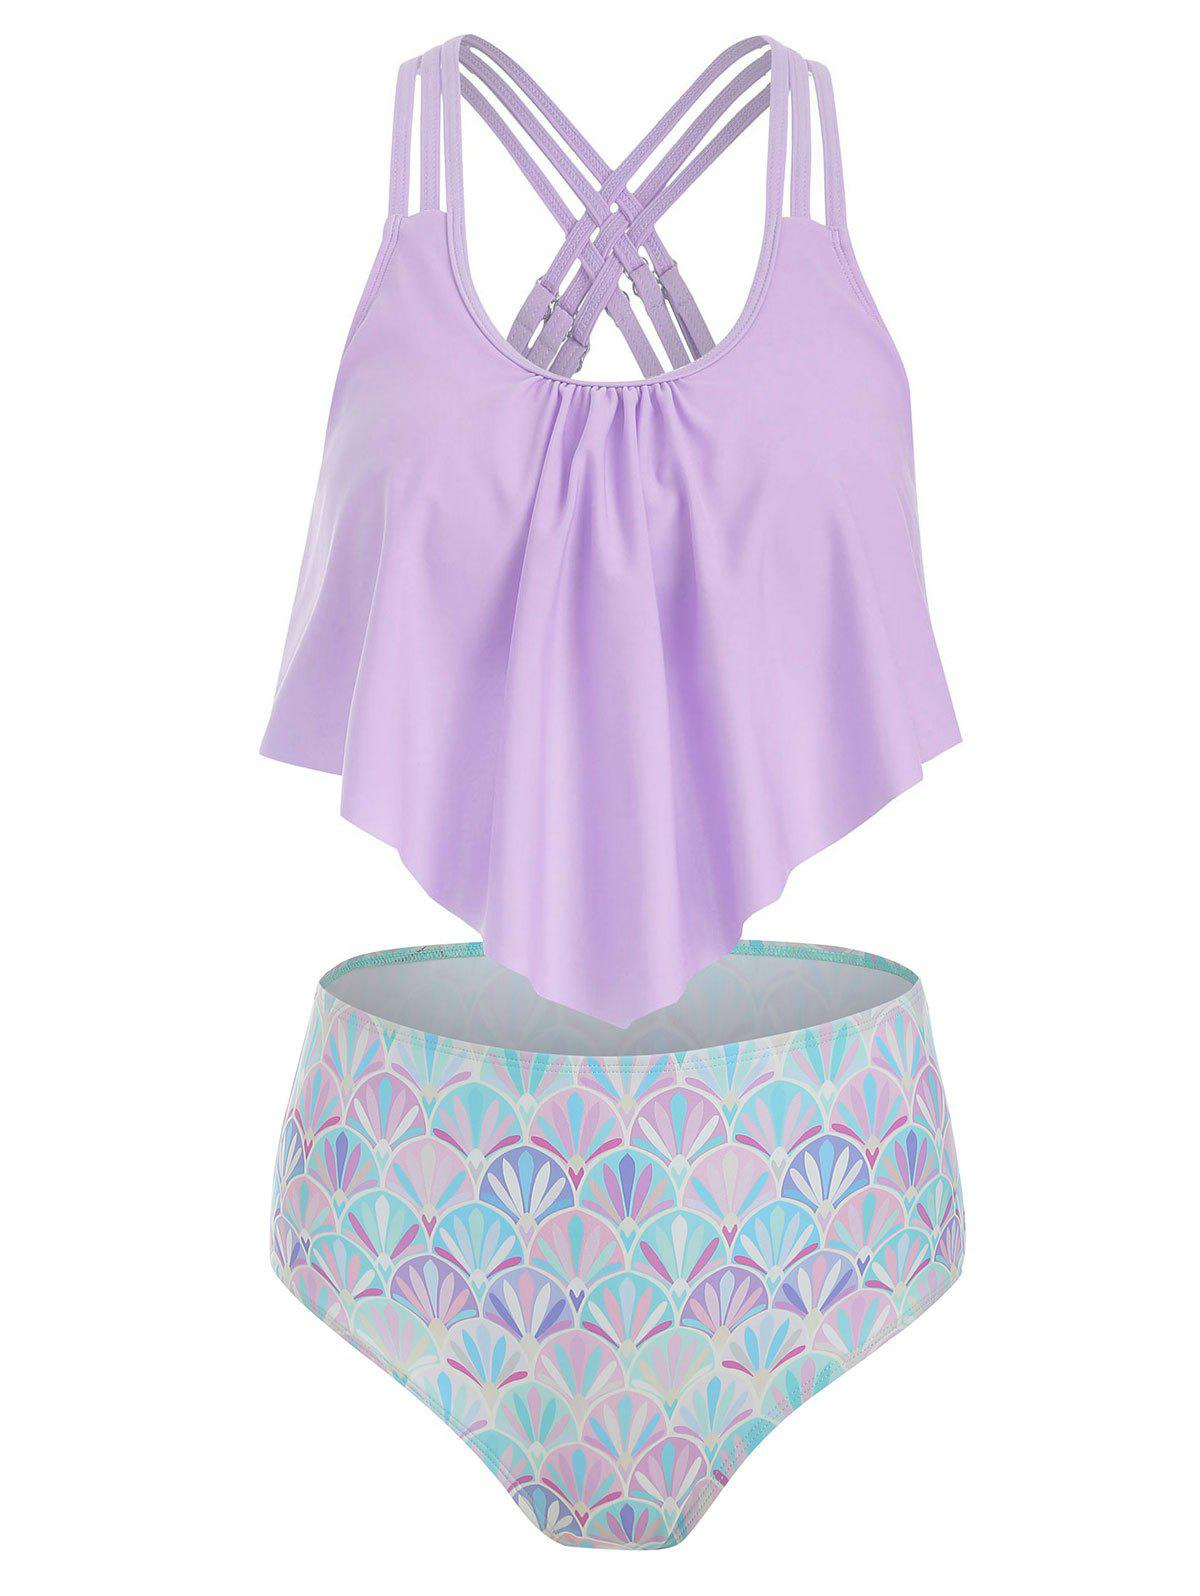 Strappy Flounce Overlay Mermaid Tankini Swimsuit - LILAC 3XL